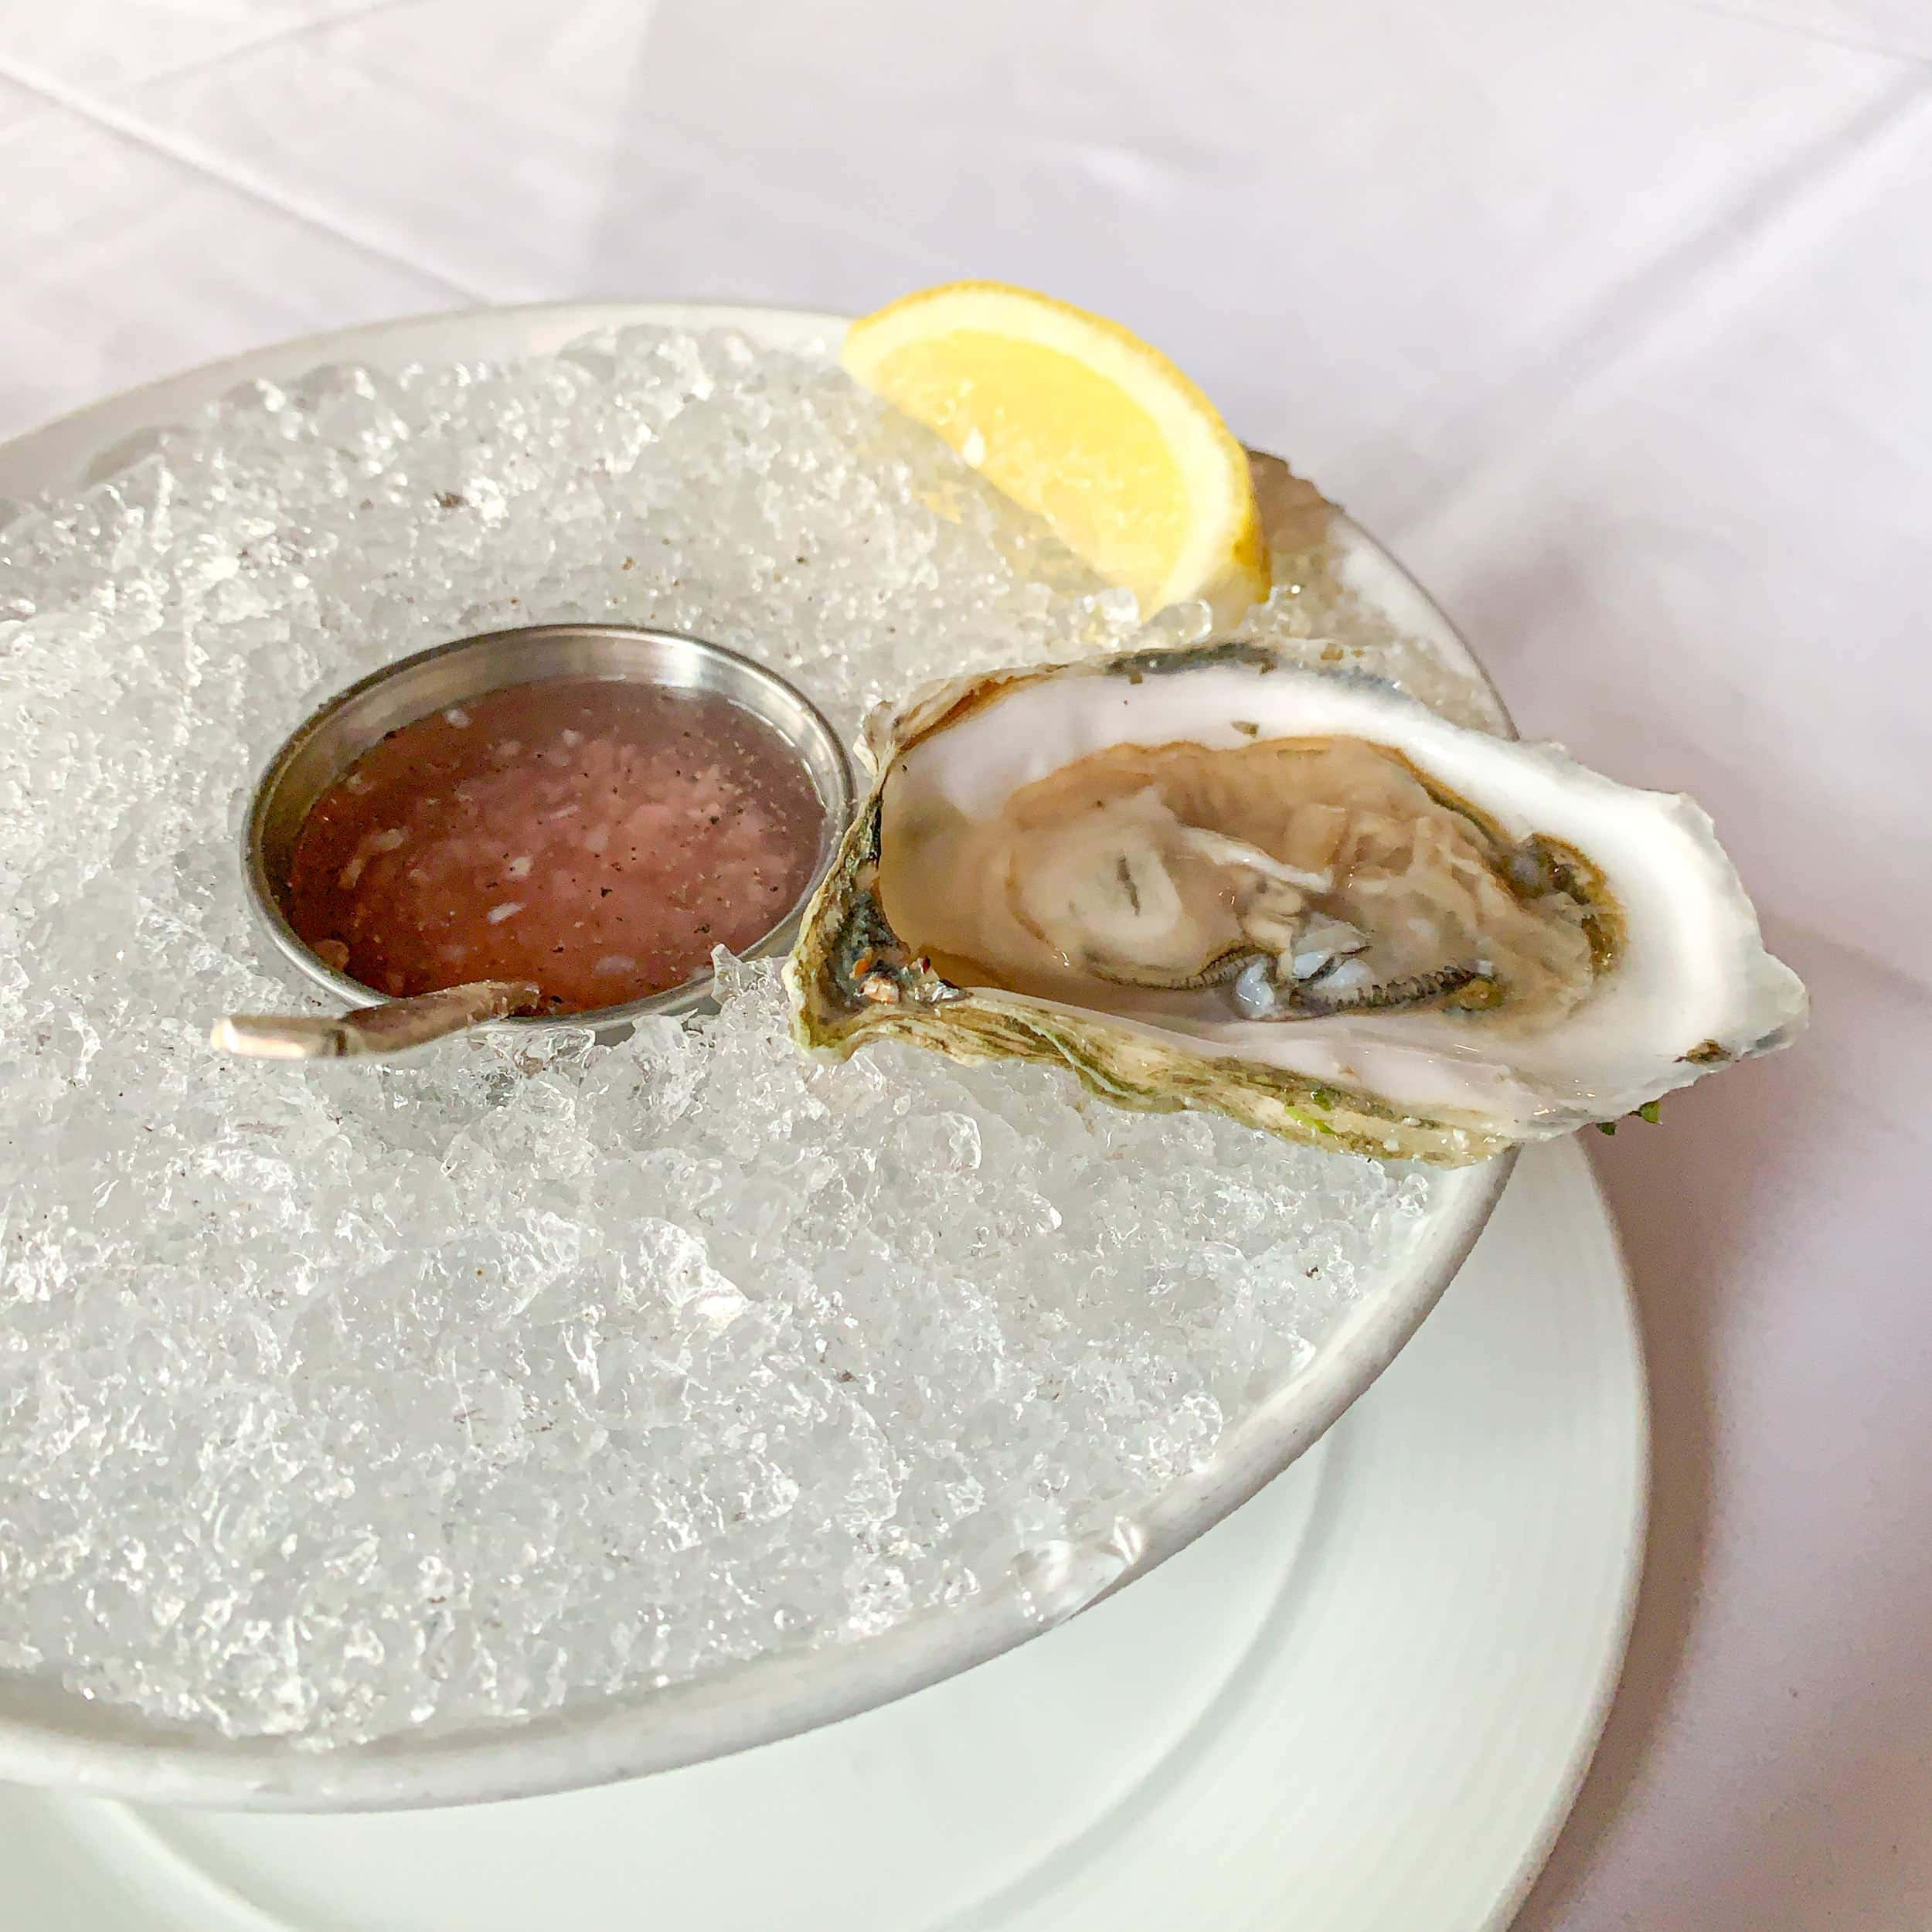 East coast oyster with prosecco mignonette